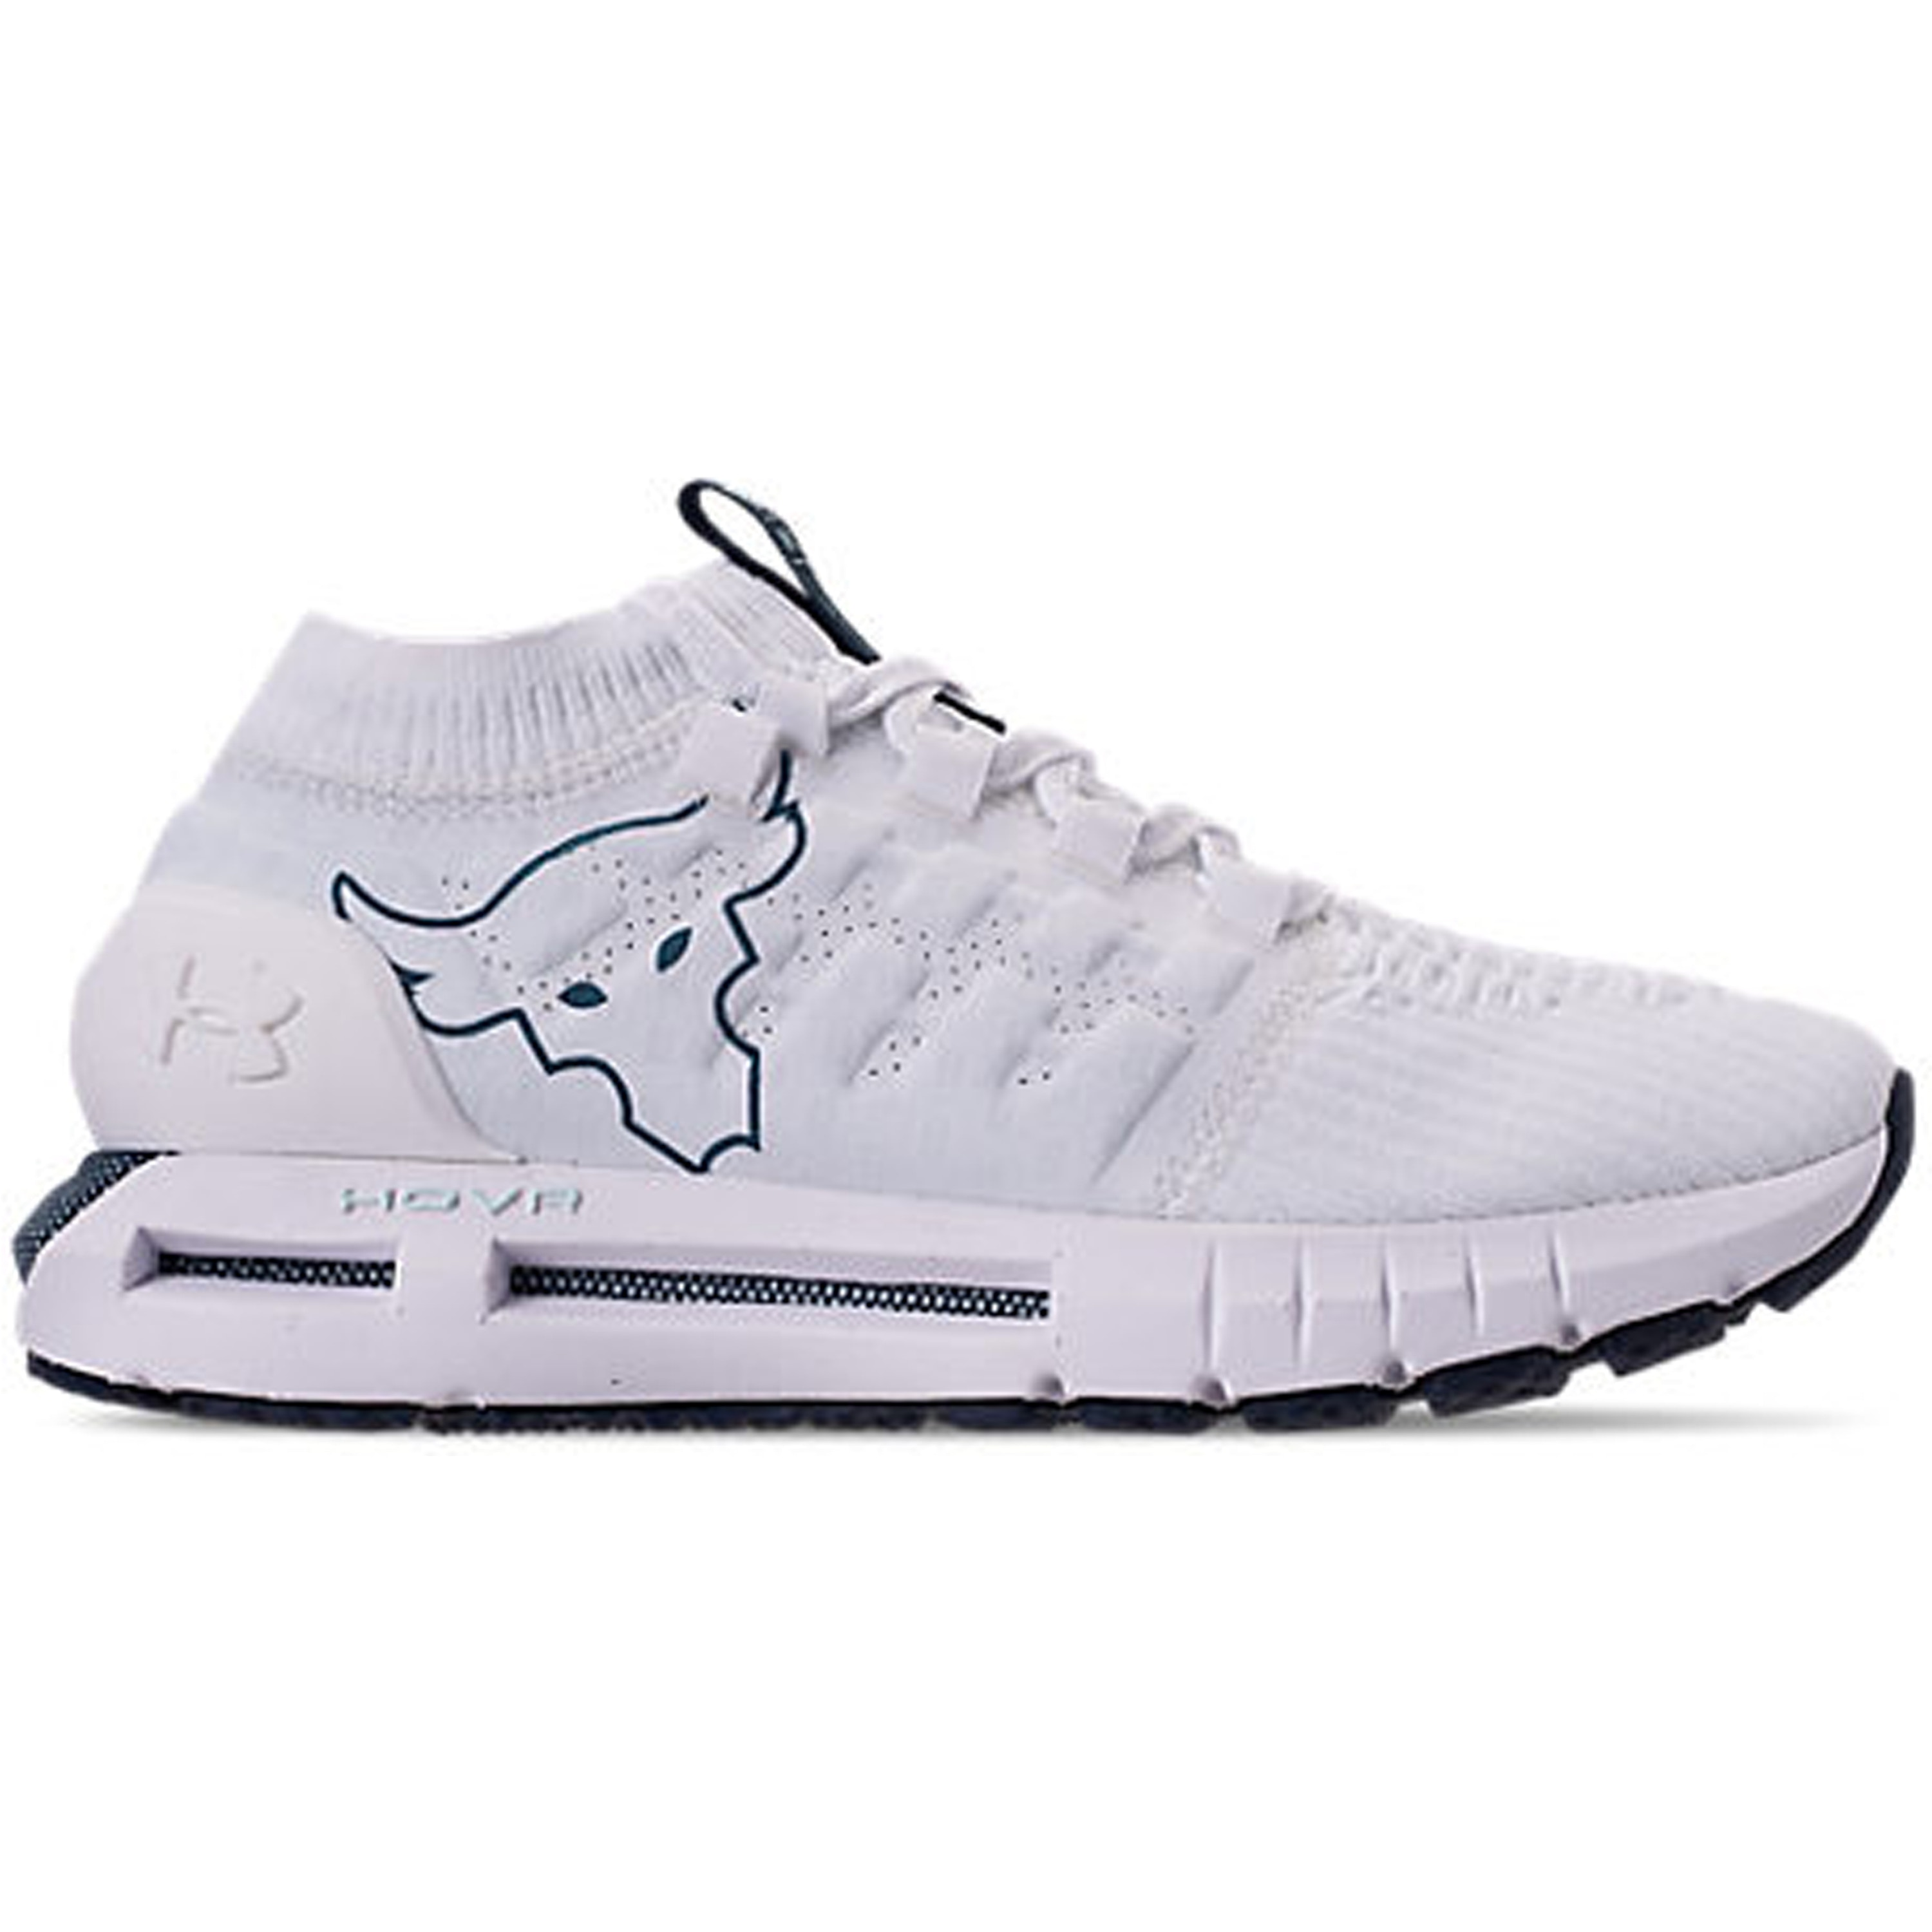 Under Armour Hovr Phantom The Rock White Fuse Teal (W) (3022542-100)